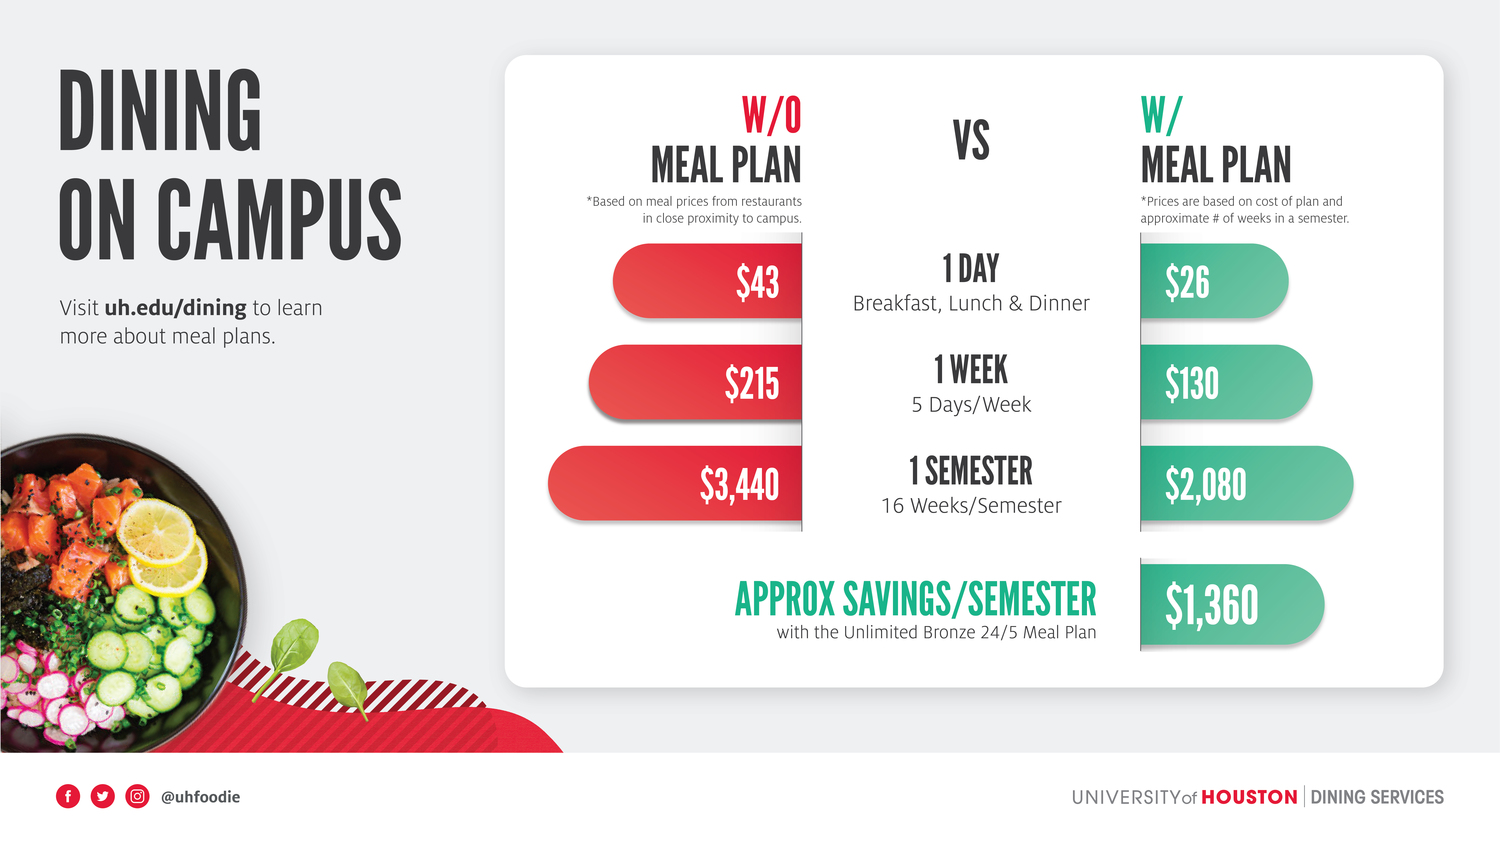 Uh Christmas Break 2021 Dine On Campus At University Of Houston For Commuter Students